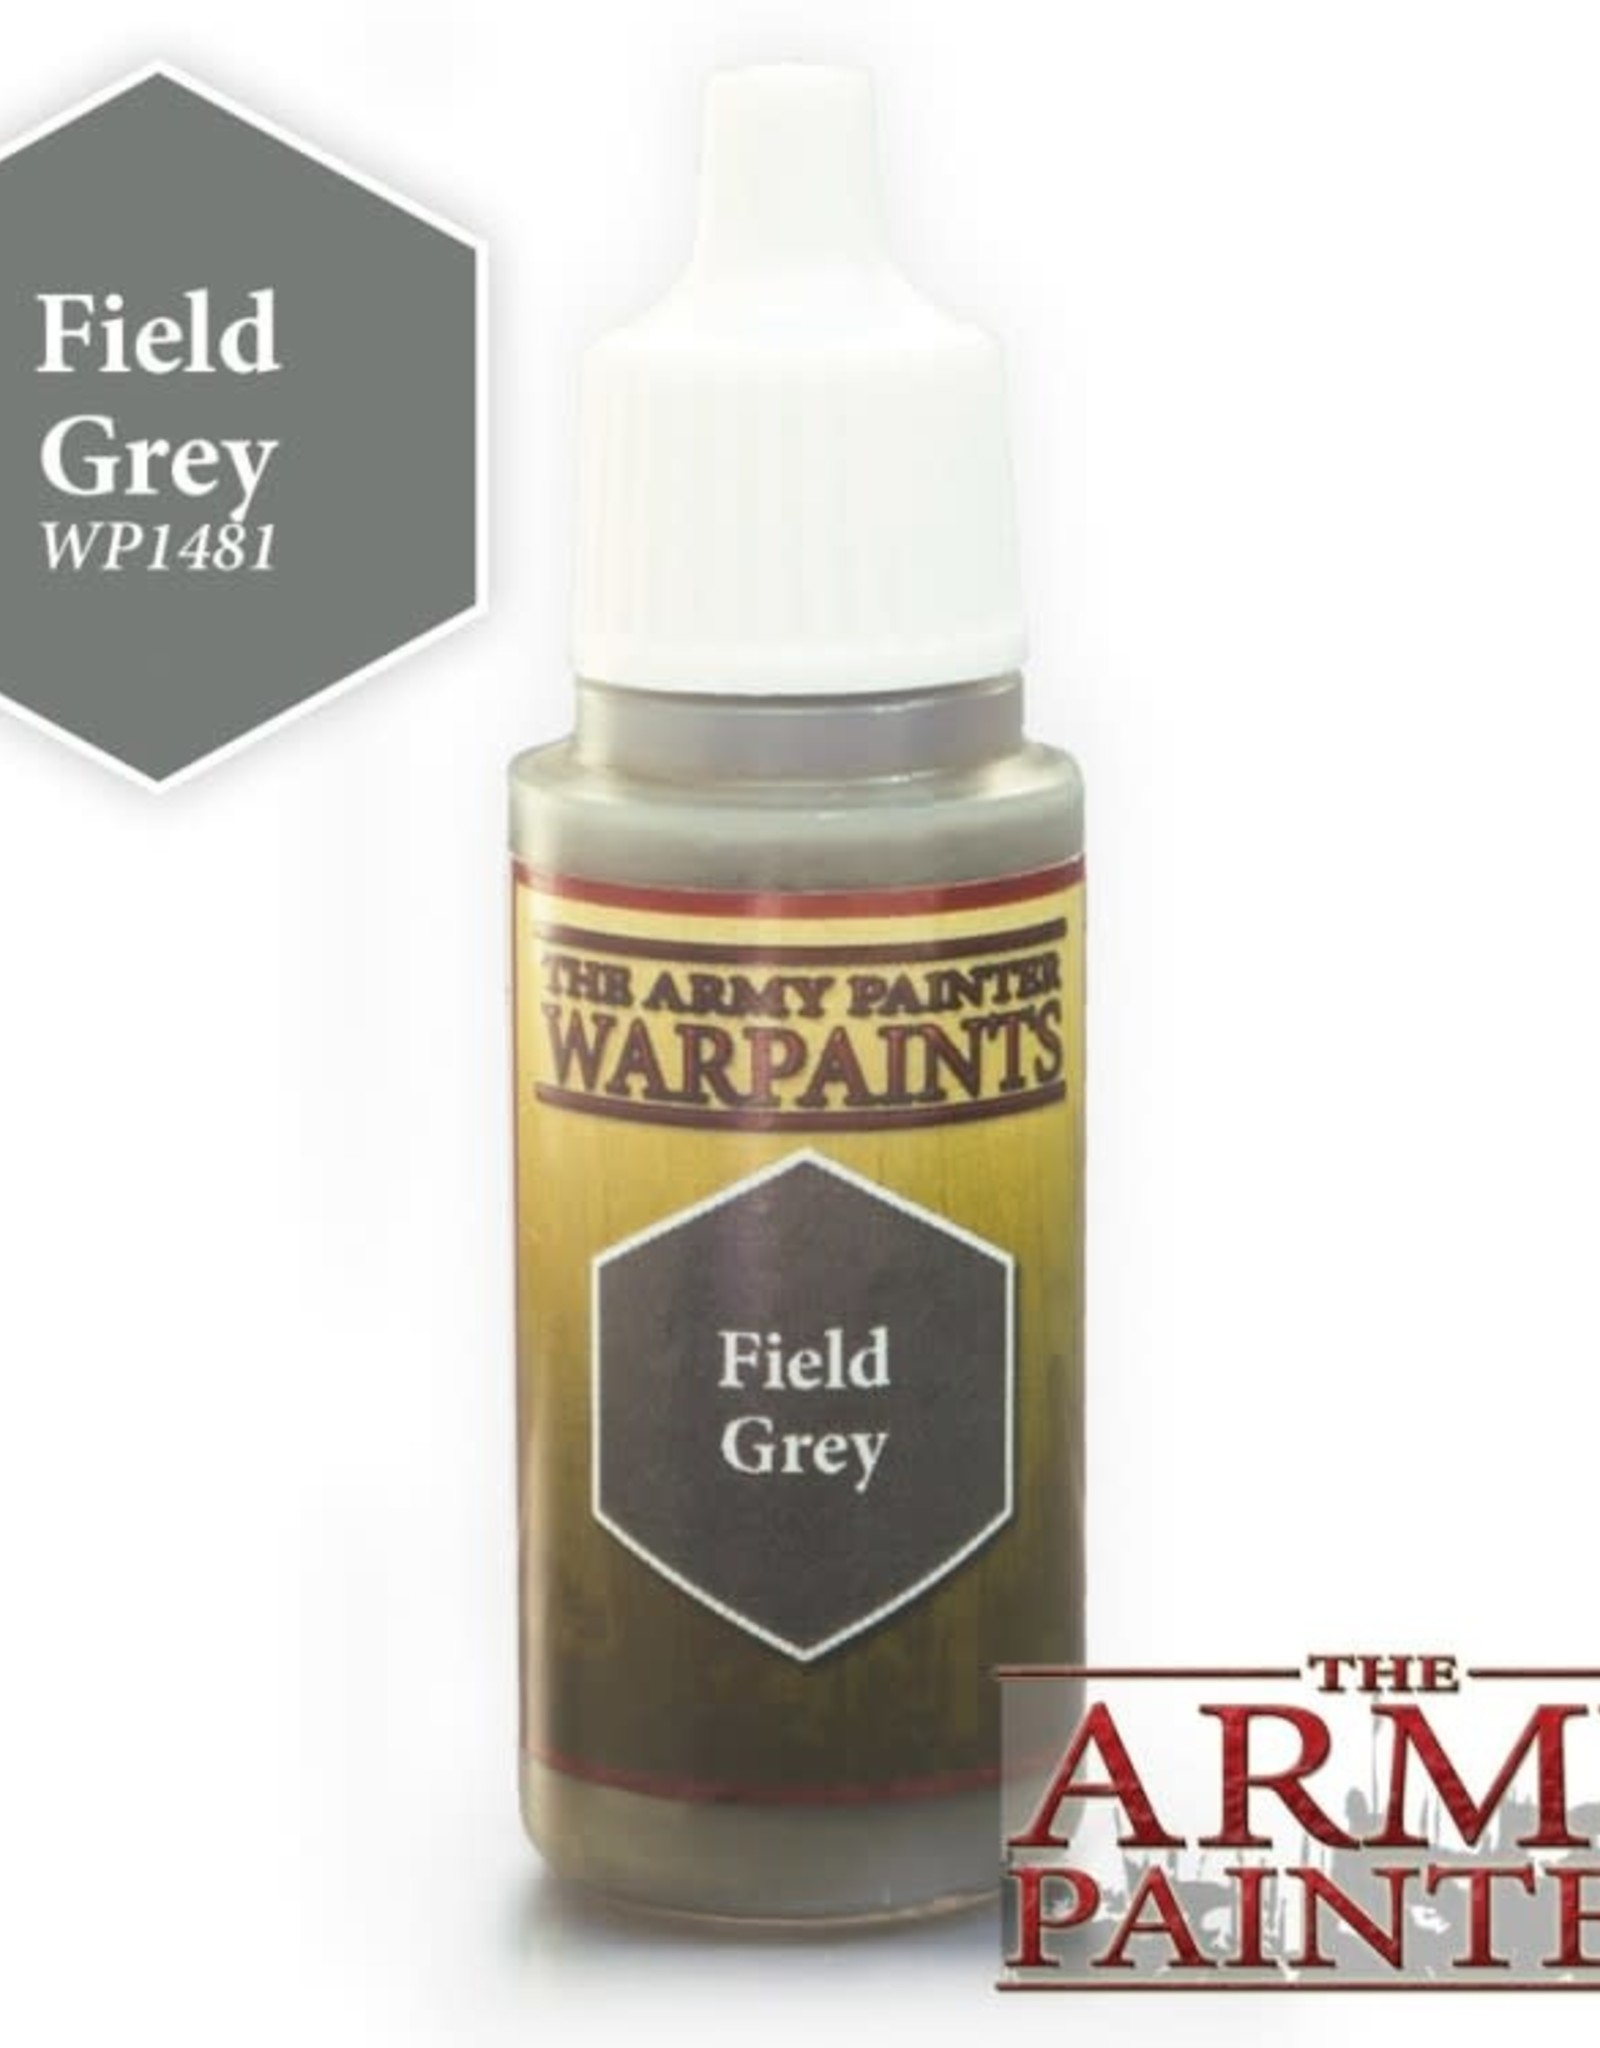 The Army Painter Warpaints - Field Grey